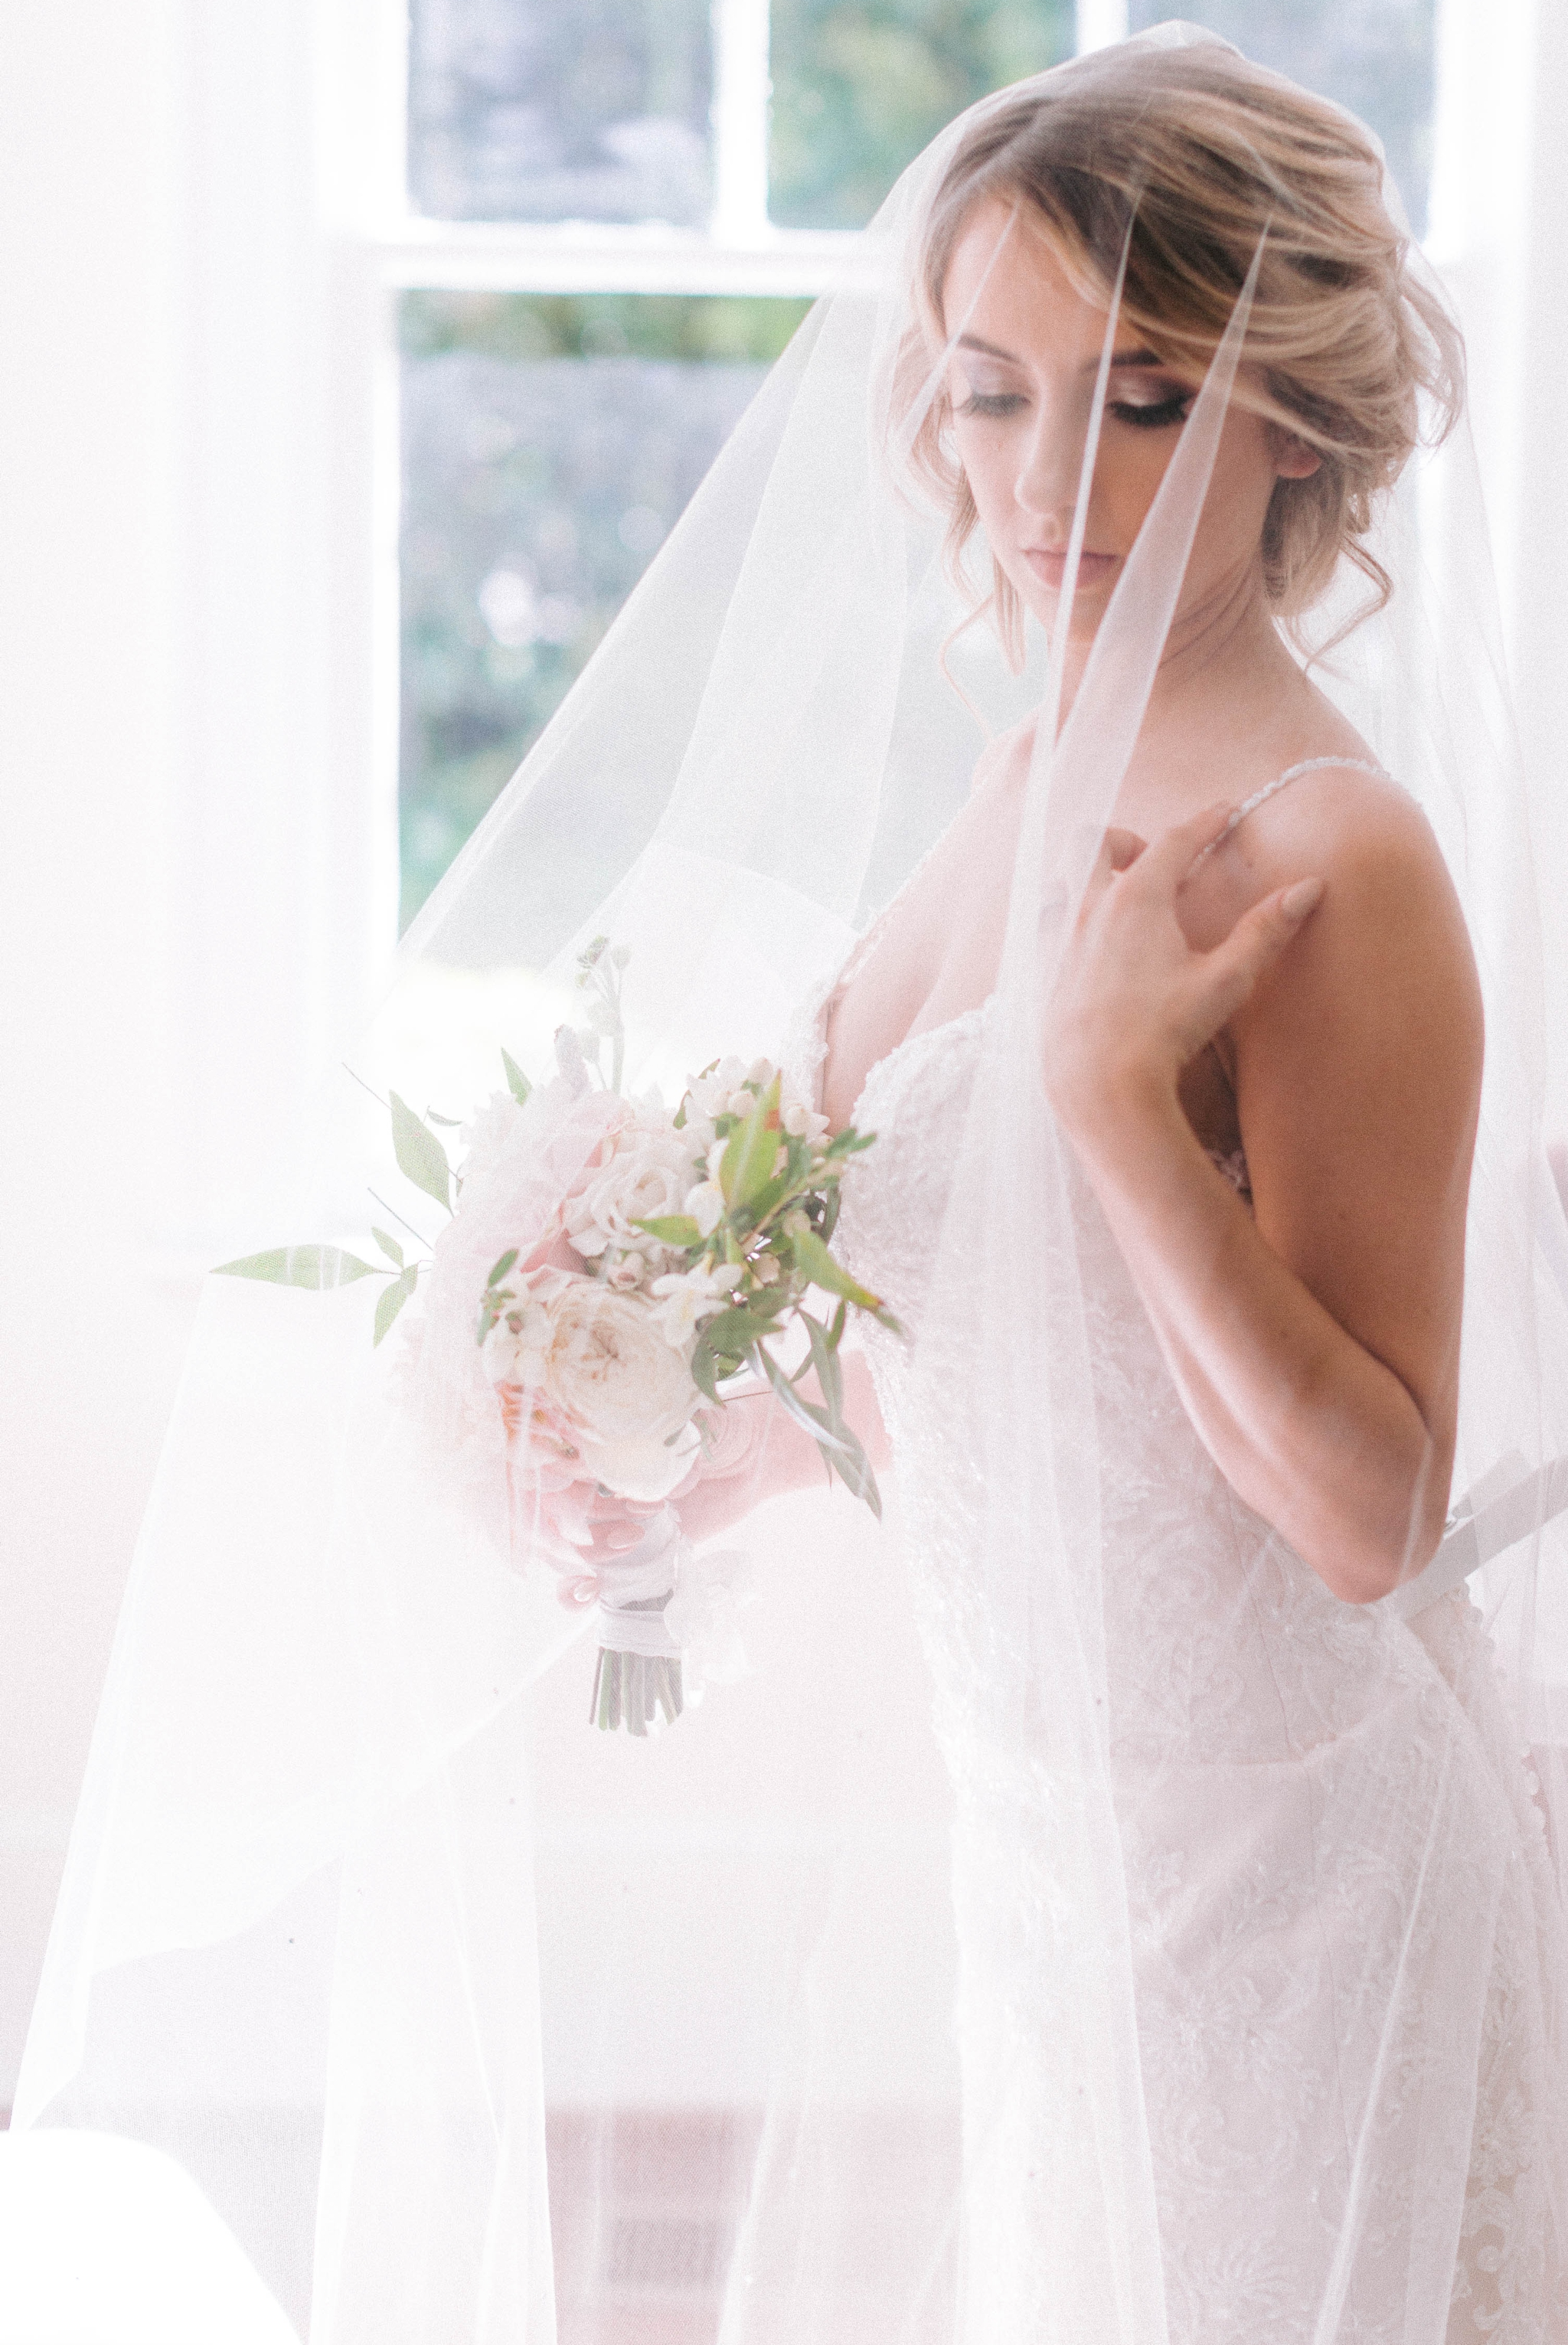 black and white Indoor Natural Light Bridal Portraits by a window with a white backdrop - classic bride with soft drop veil over her face - wedding gown by Stella York - Honolulu, Oahu, Hawaii Wedding Photographer